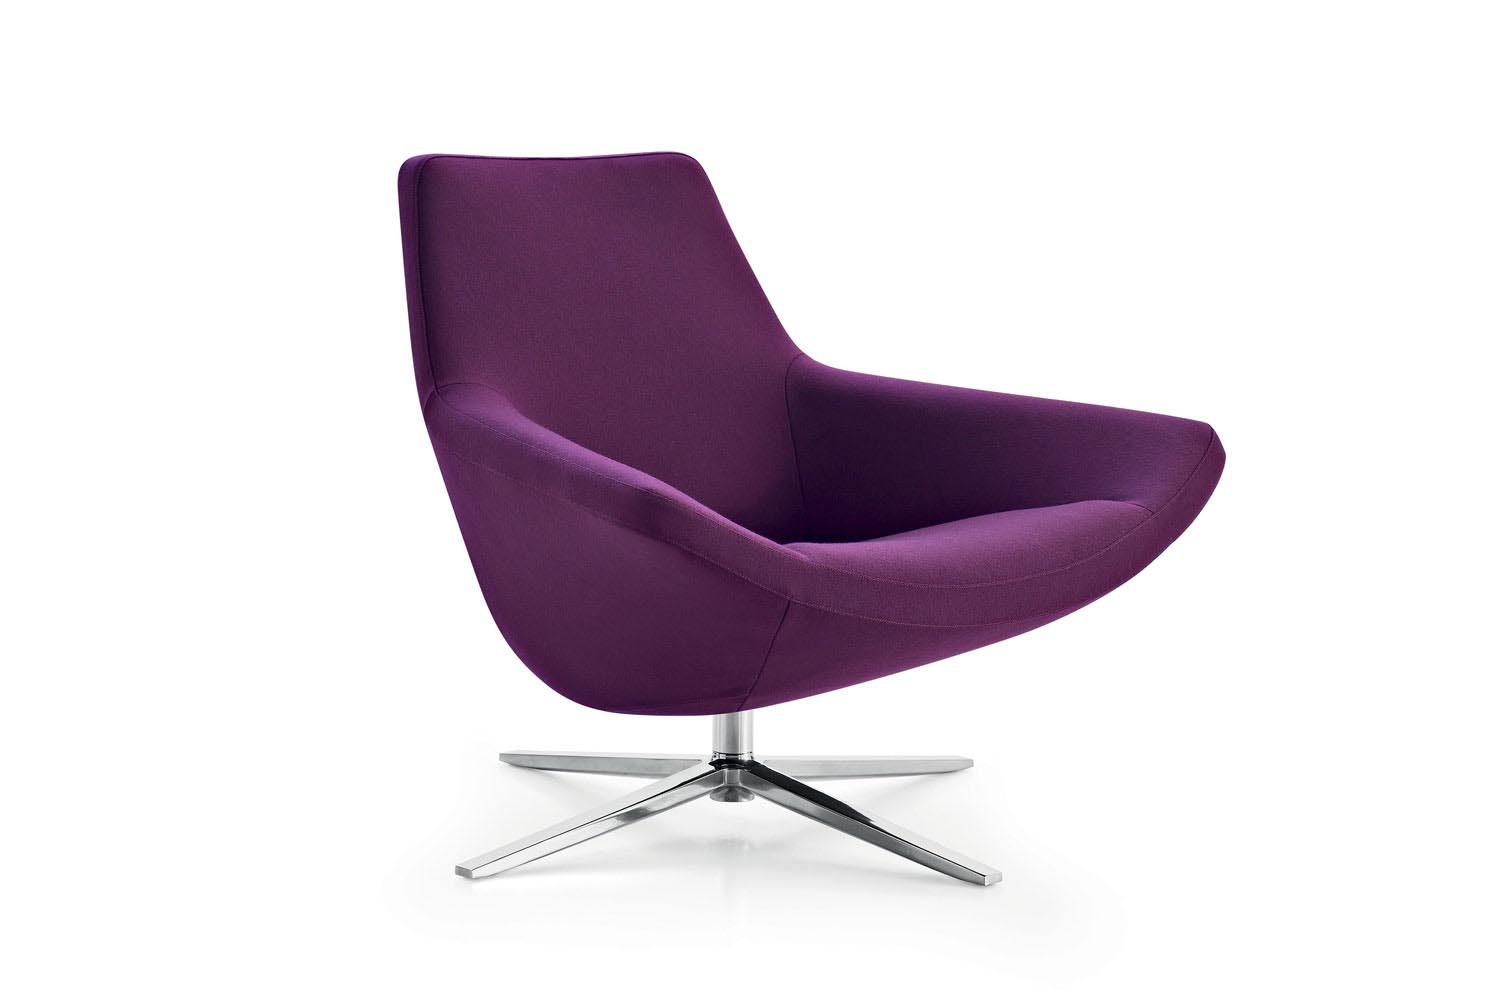 Project Metropolitan '14 Swivel Armchair by Jeffrey Bernett for B&B Italia Project